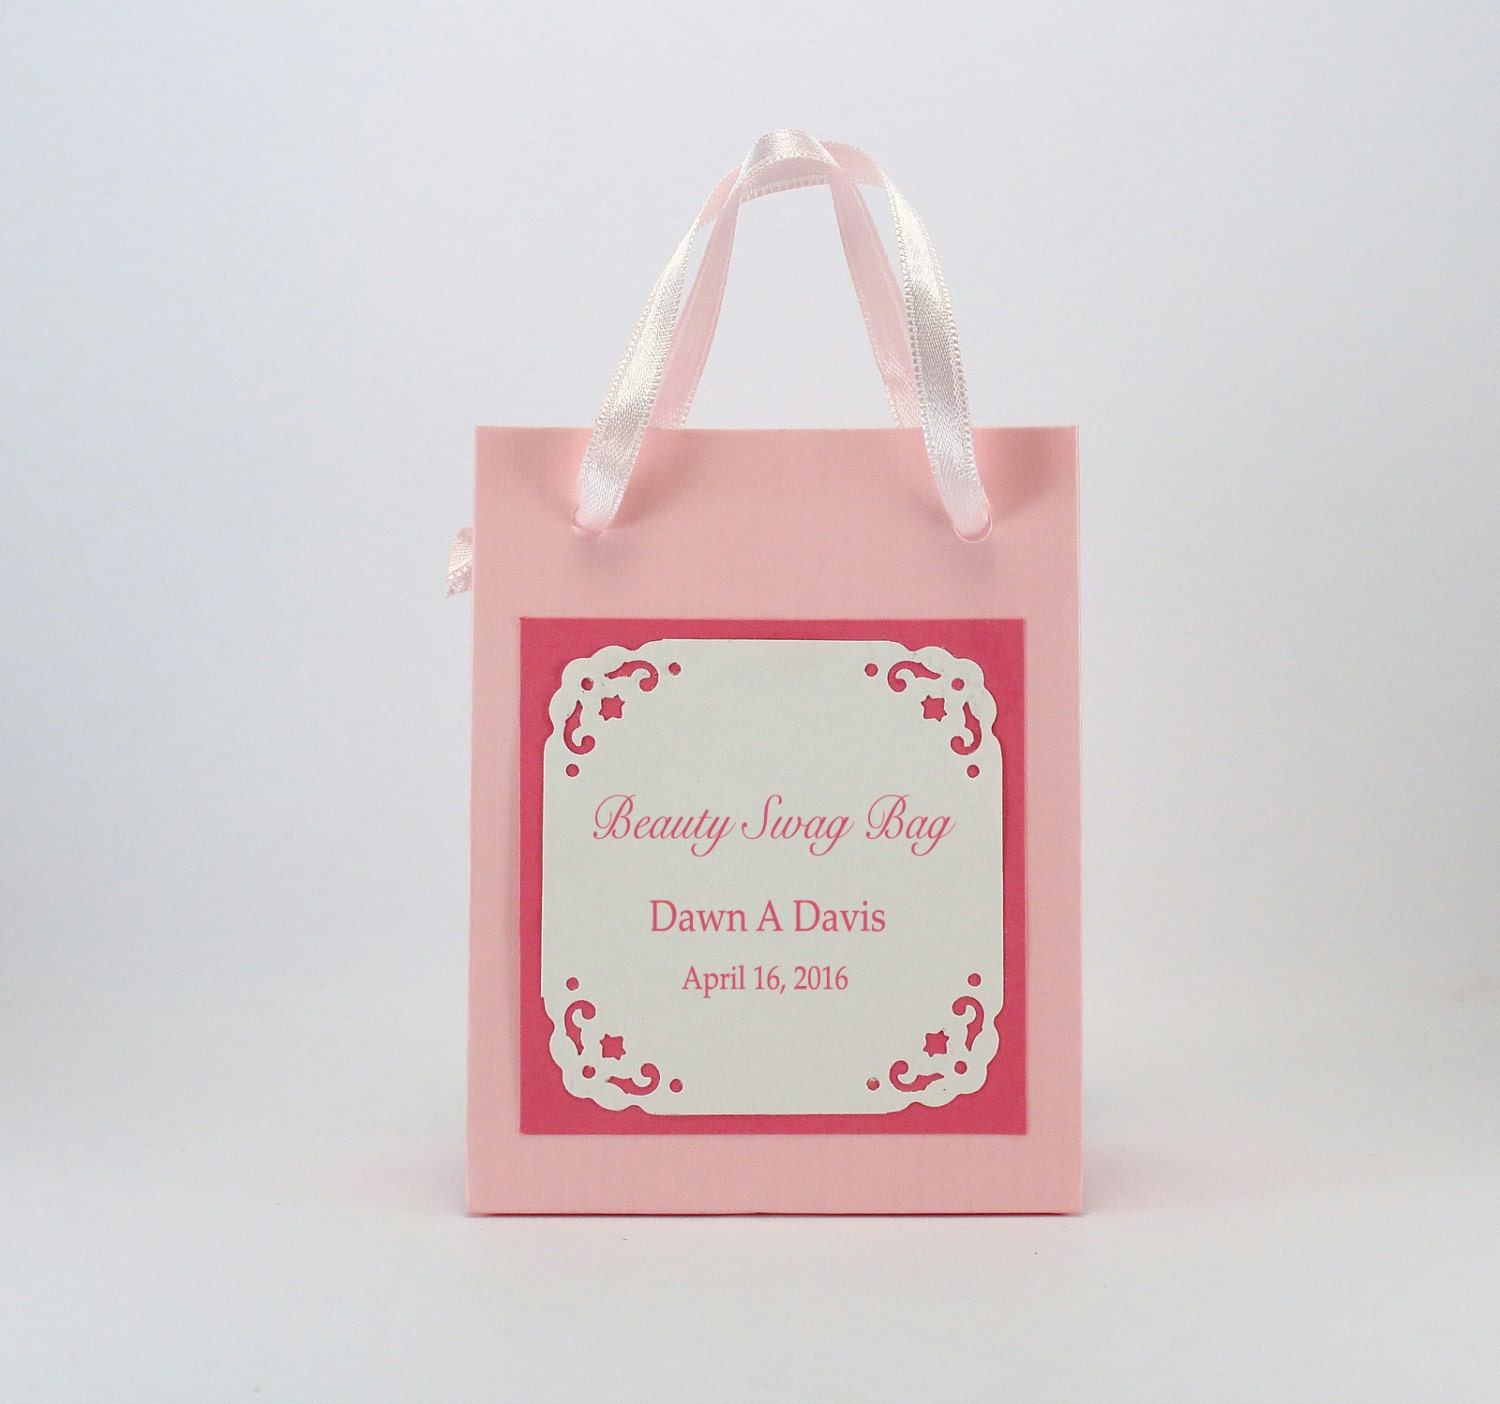 pink bridal shower gift bags 2 - 28 images - mini sheer organza tote ...